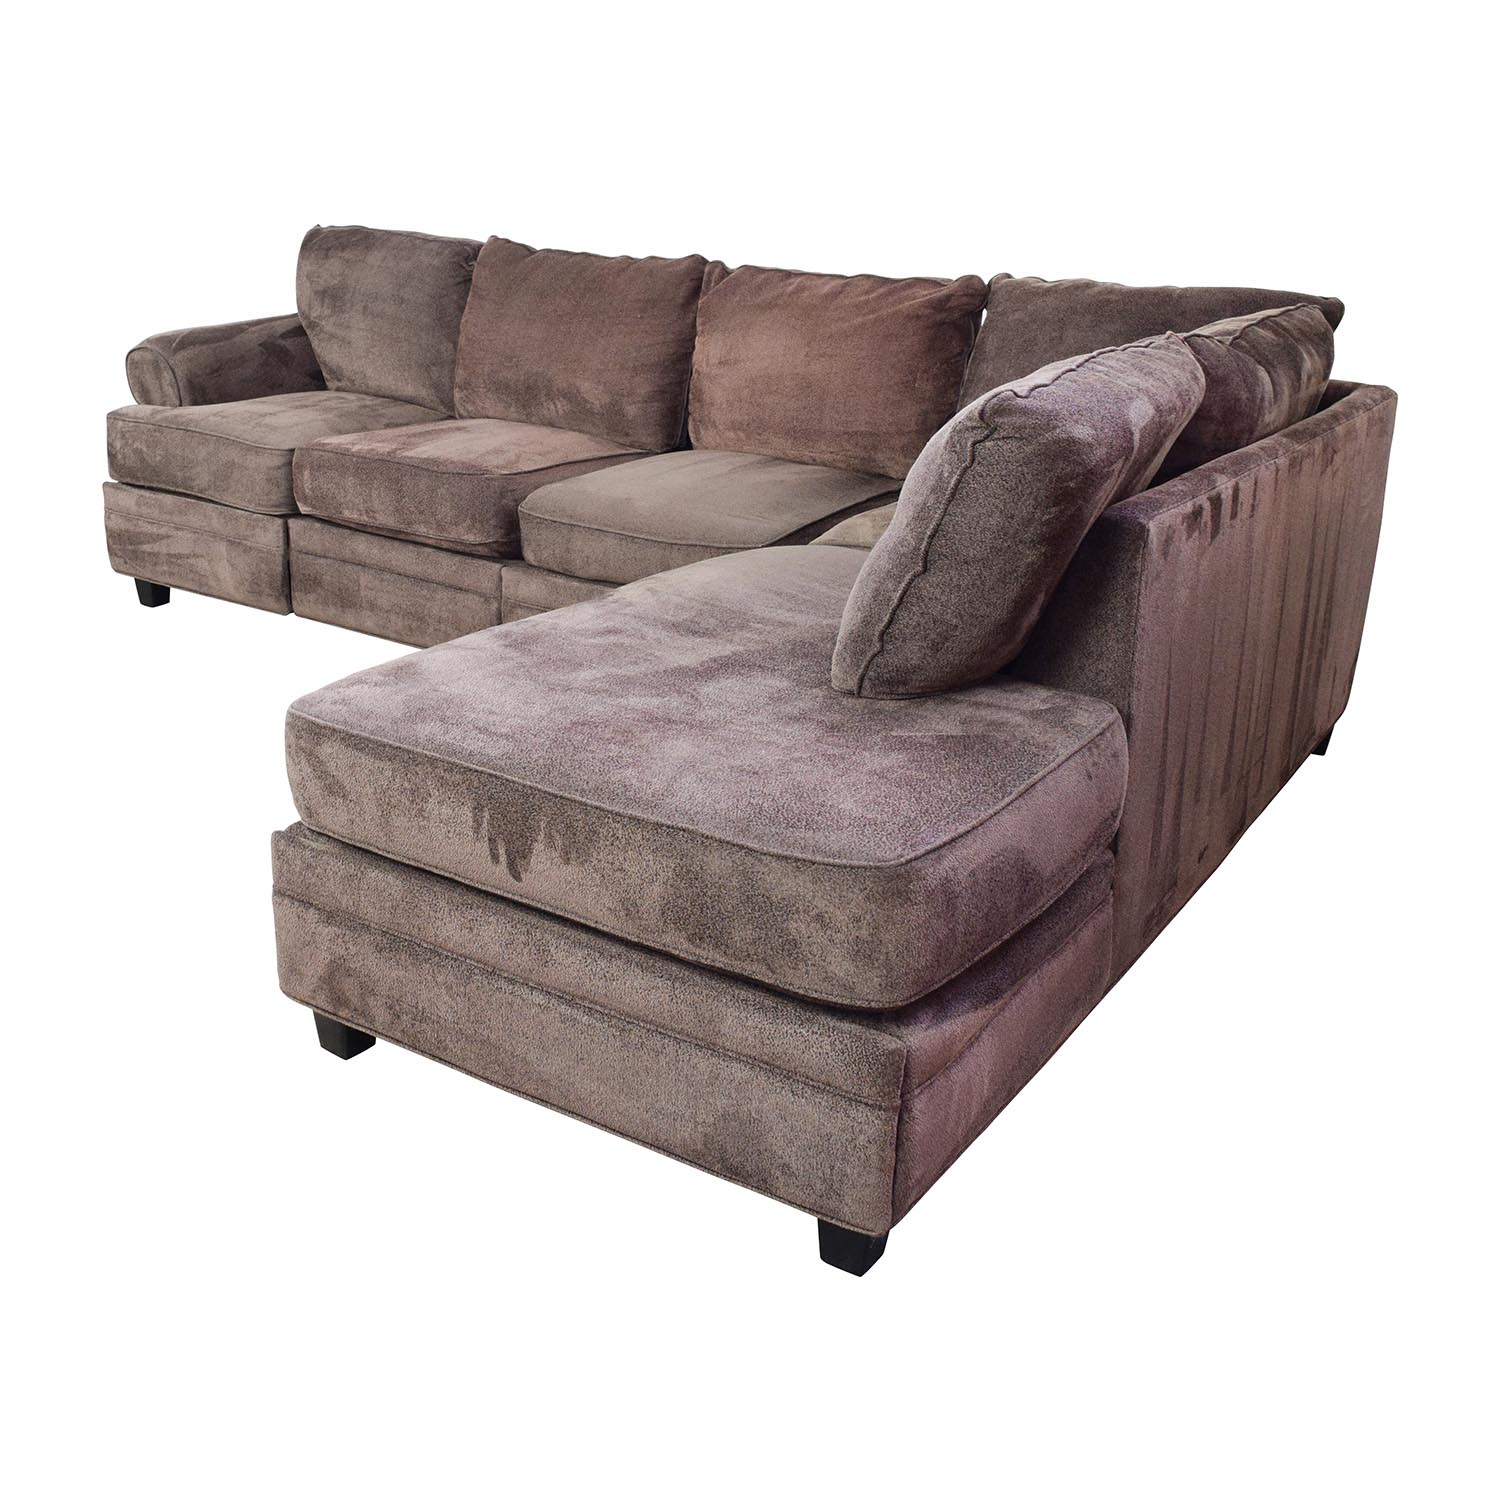 55 OFF  Bobs Furniture Bobs Furniture Brown Sectional